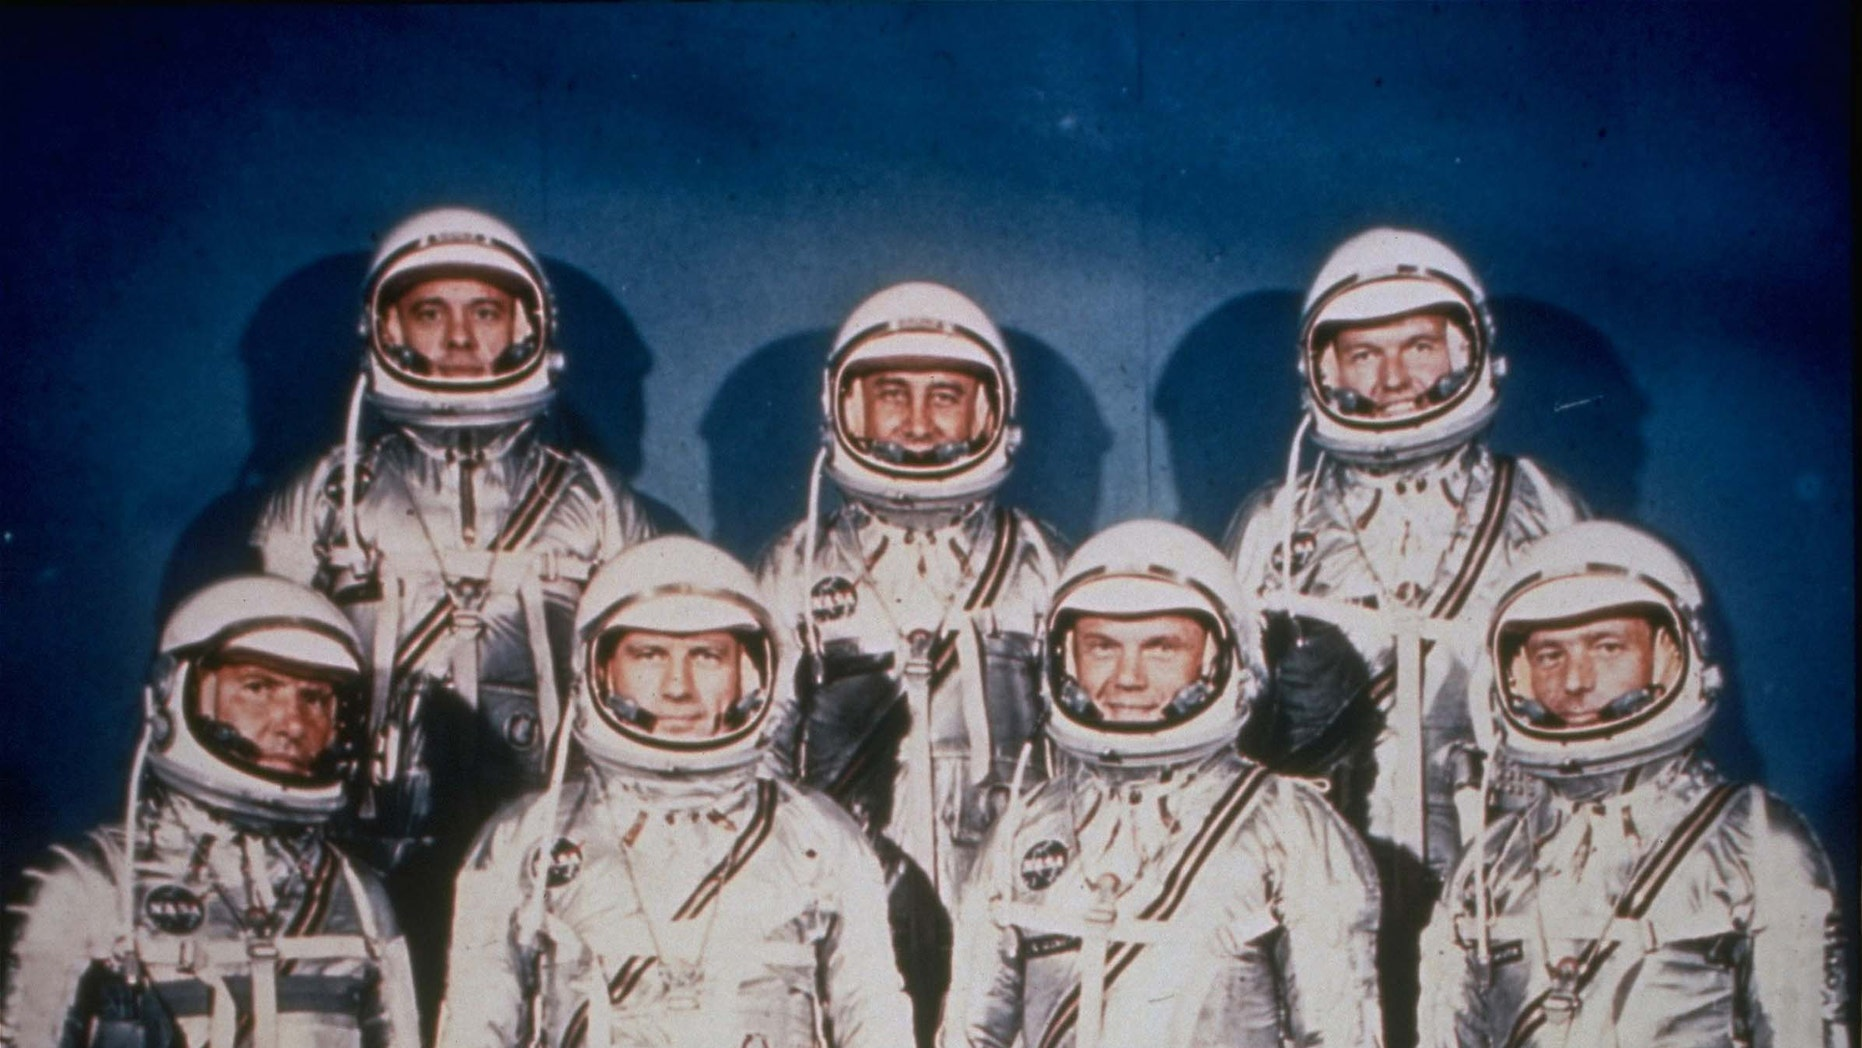 This 1961 file photo provided by NASA shows the original seven Mercury astronauts in their silver spacesuits. First row, from left are Walter Schirra Jr., Donald Slayton, John Glenn and Scott Carpenter. In the back row are Alan Shepard, Jr., Virgil Grissom and Gordon Cooper.